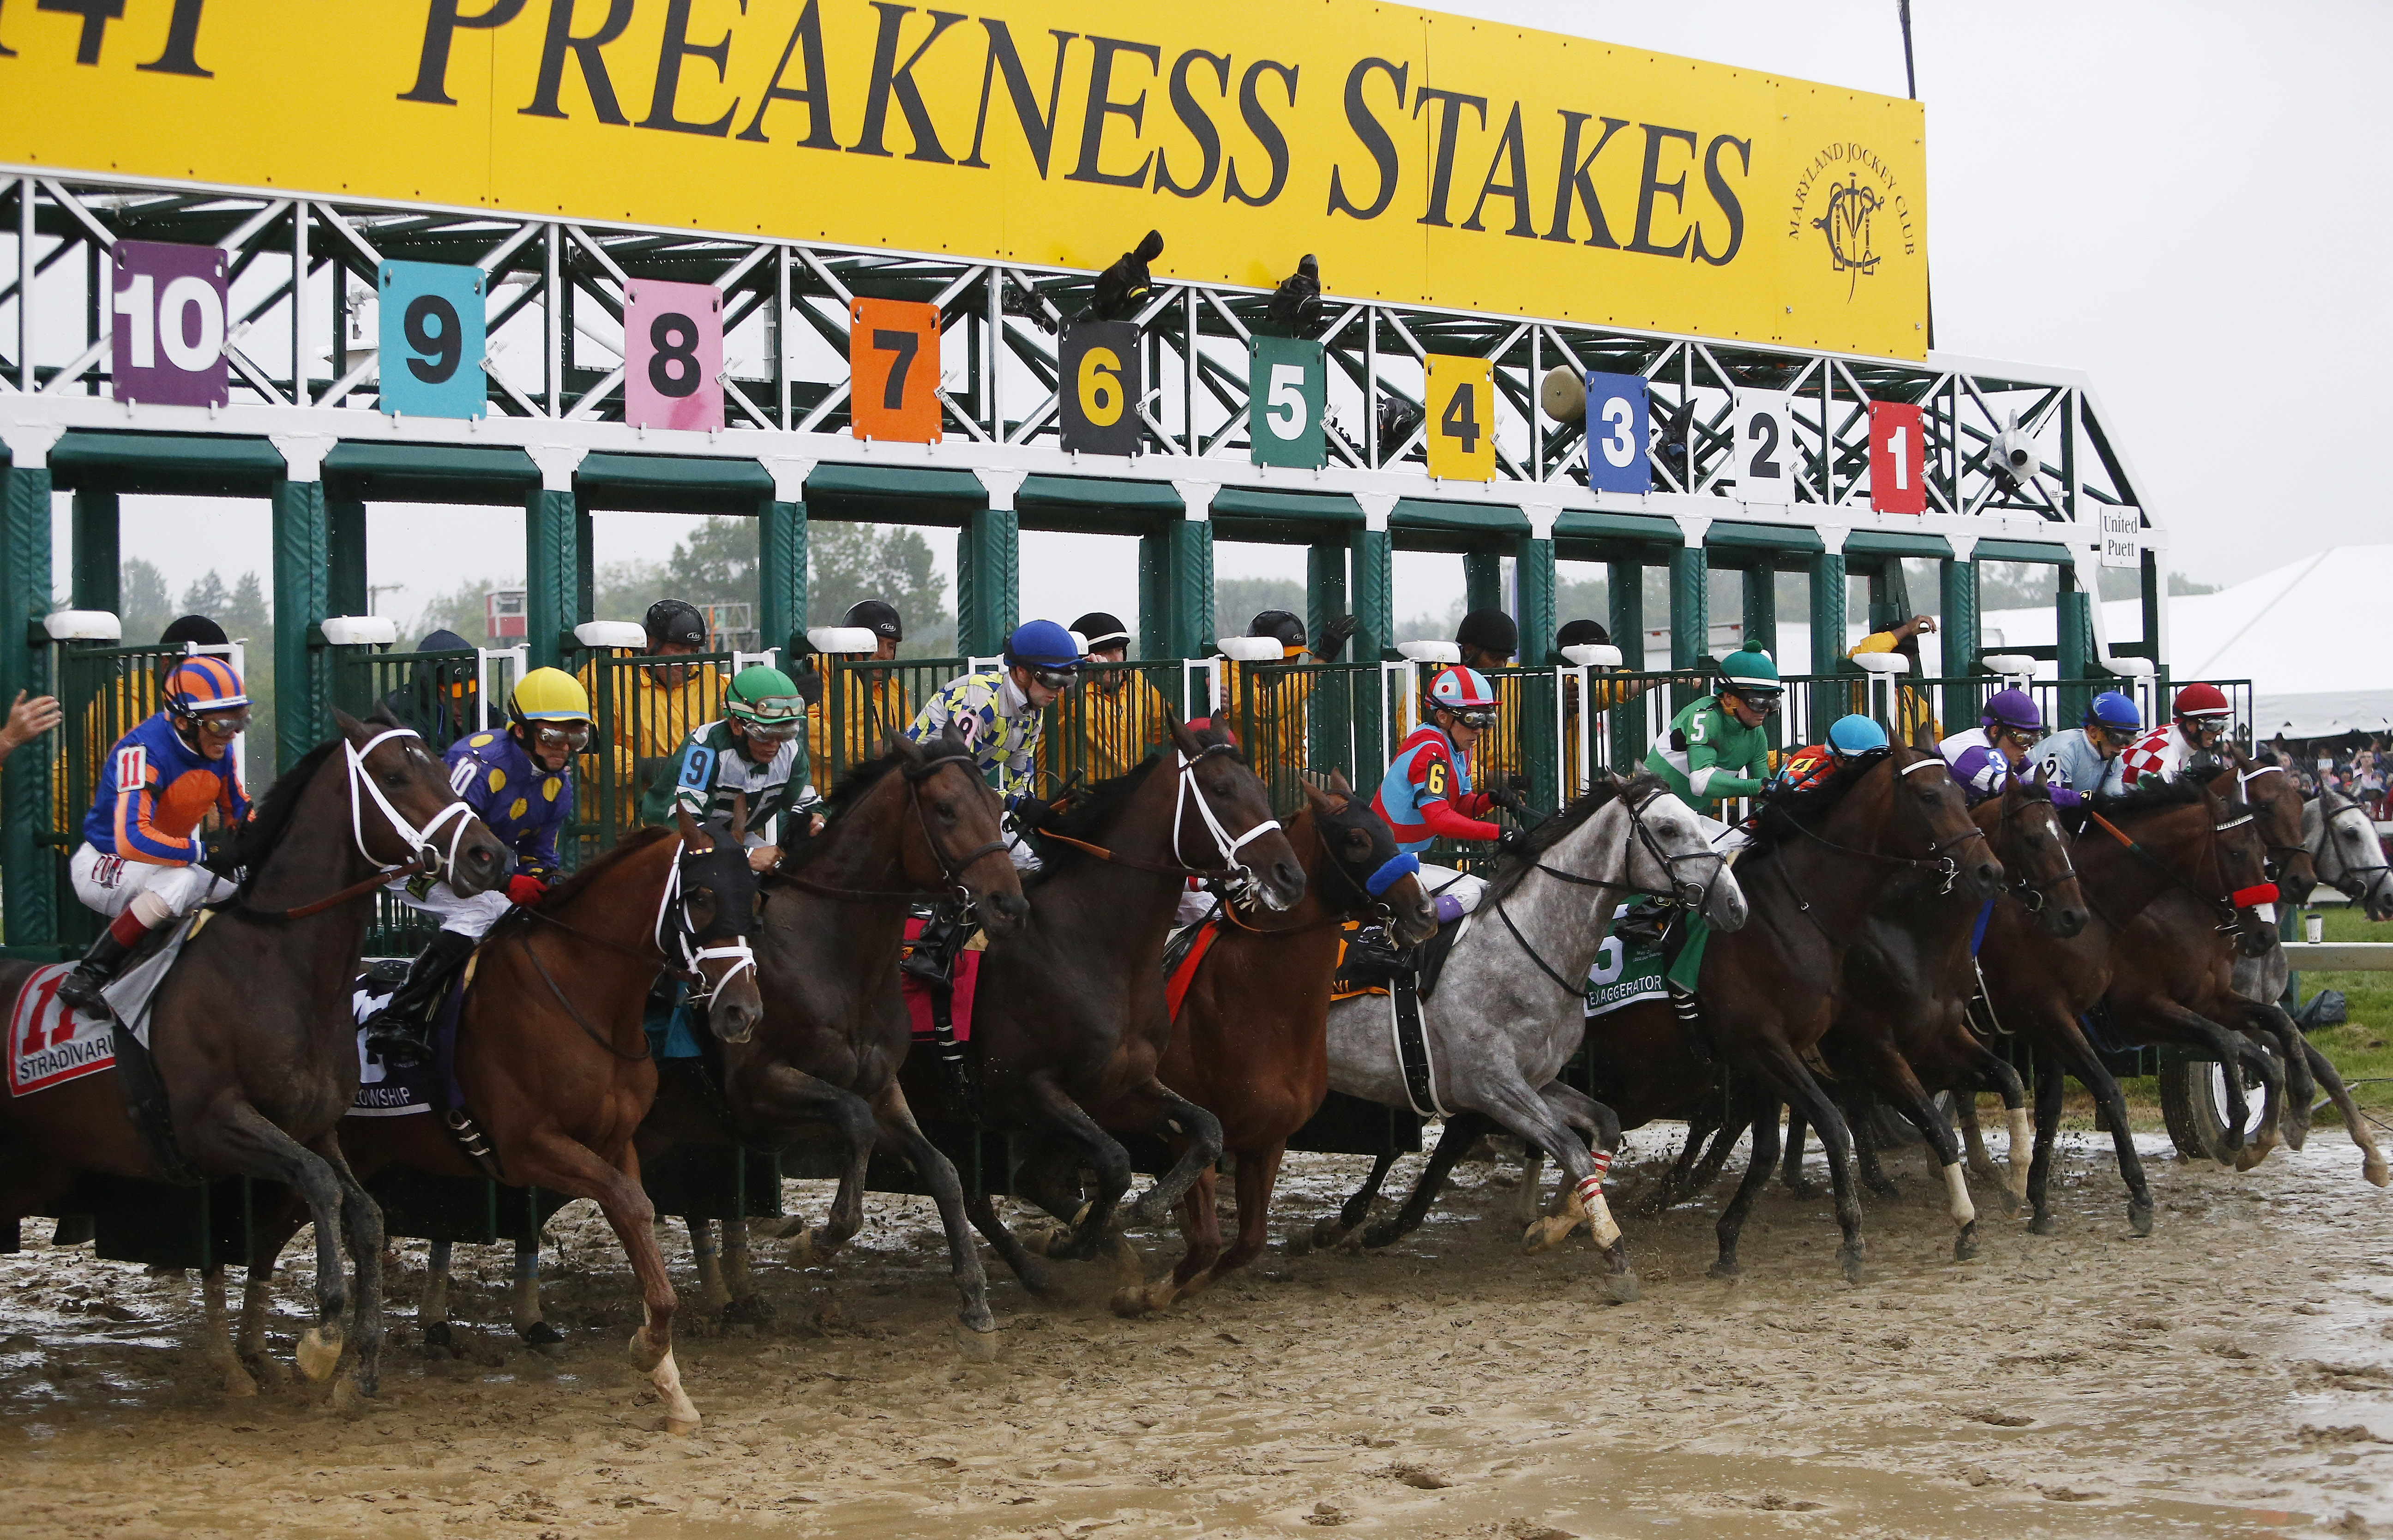 Horses leave the starting gate during the 141st Preakness Stakes horse race at Pimlico Race Course, Saturday, May 21, 2016, in Baltimore. Exaggerator won the race. (AP Photo/Garry Jones)